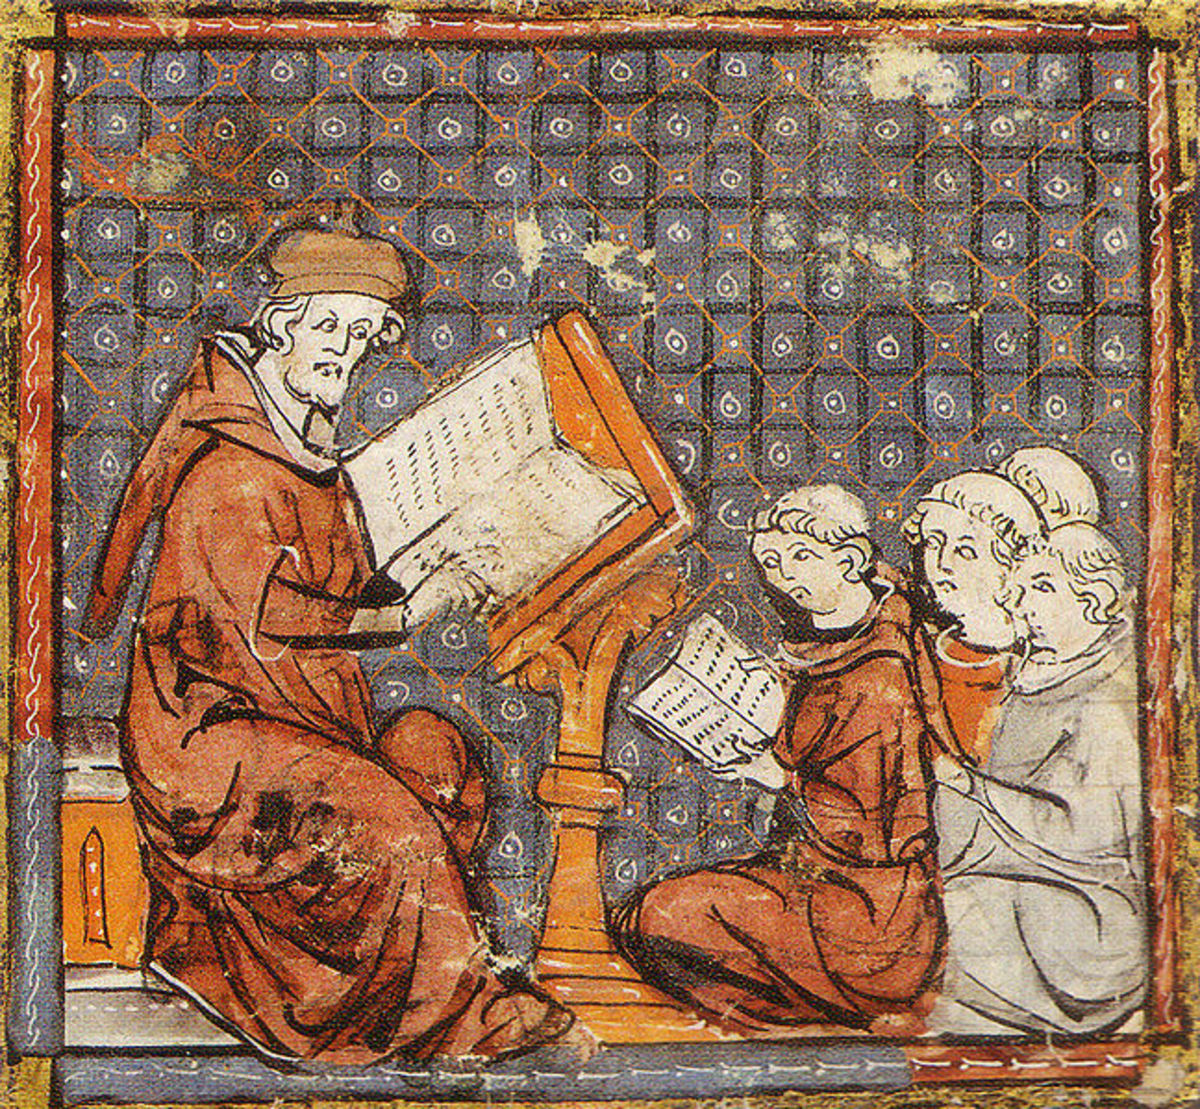 Classes in a medieval university